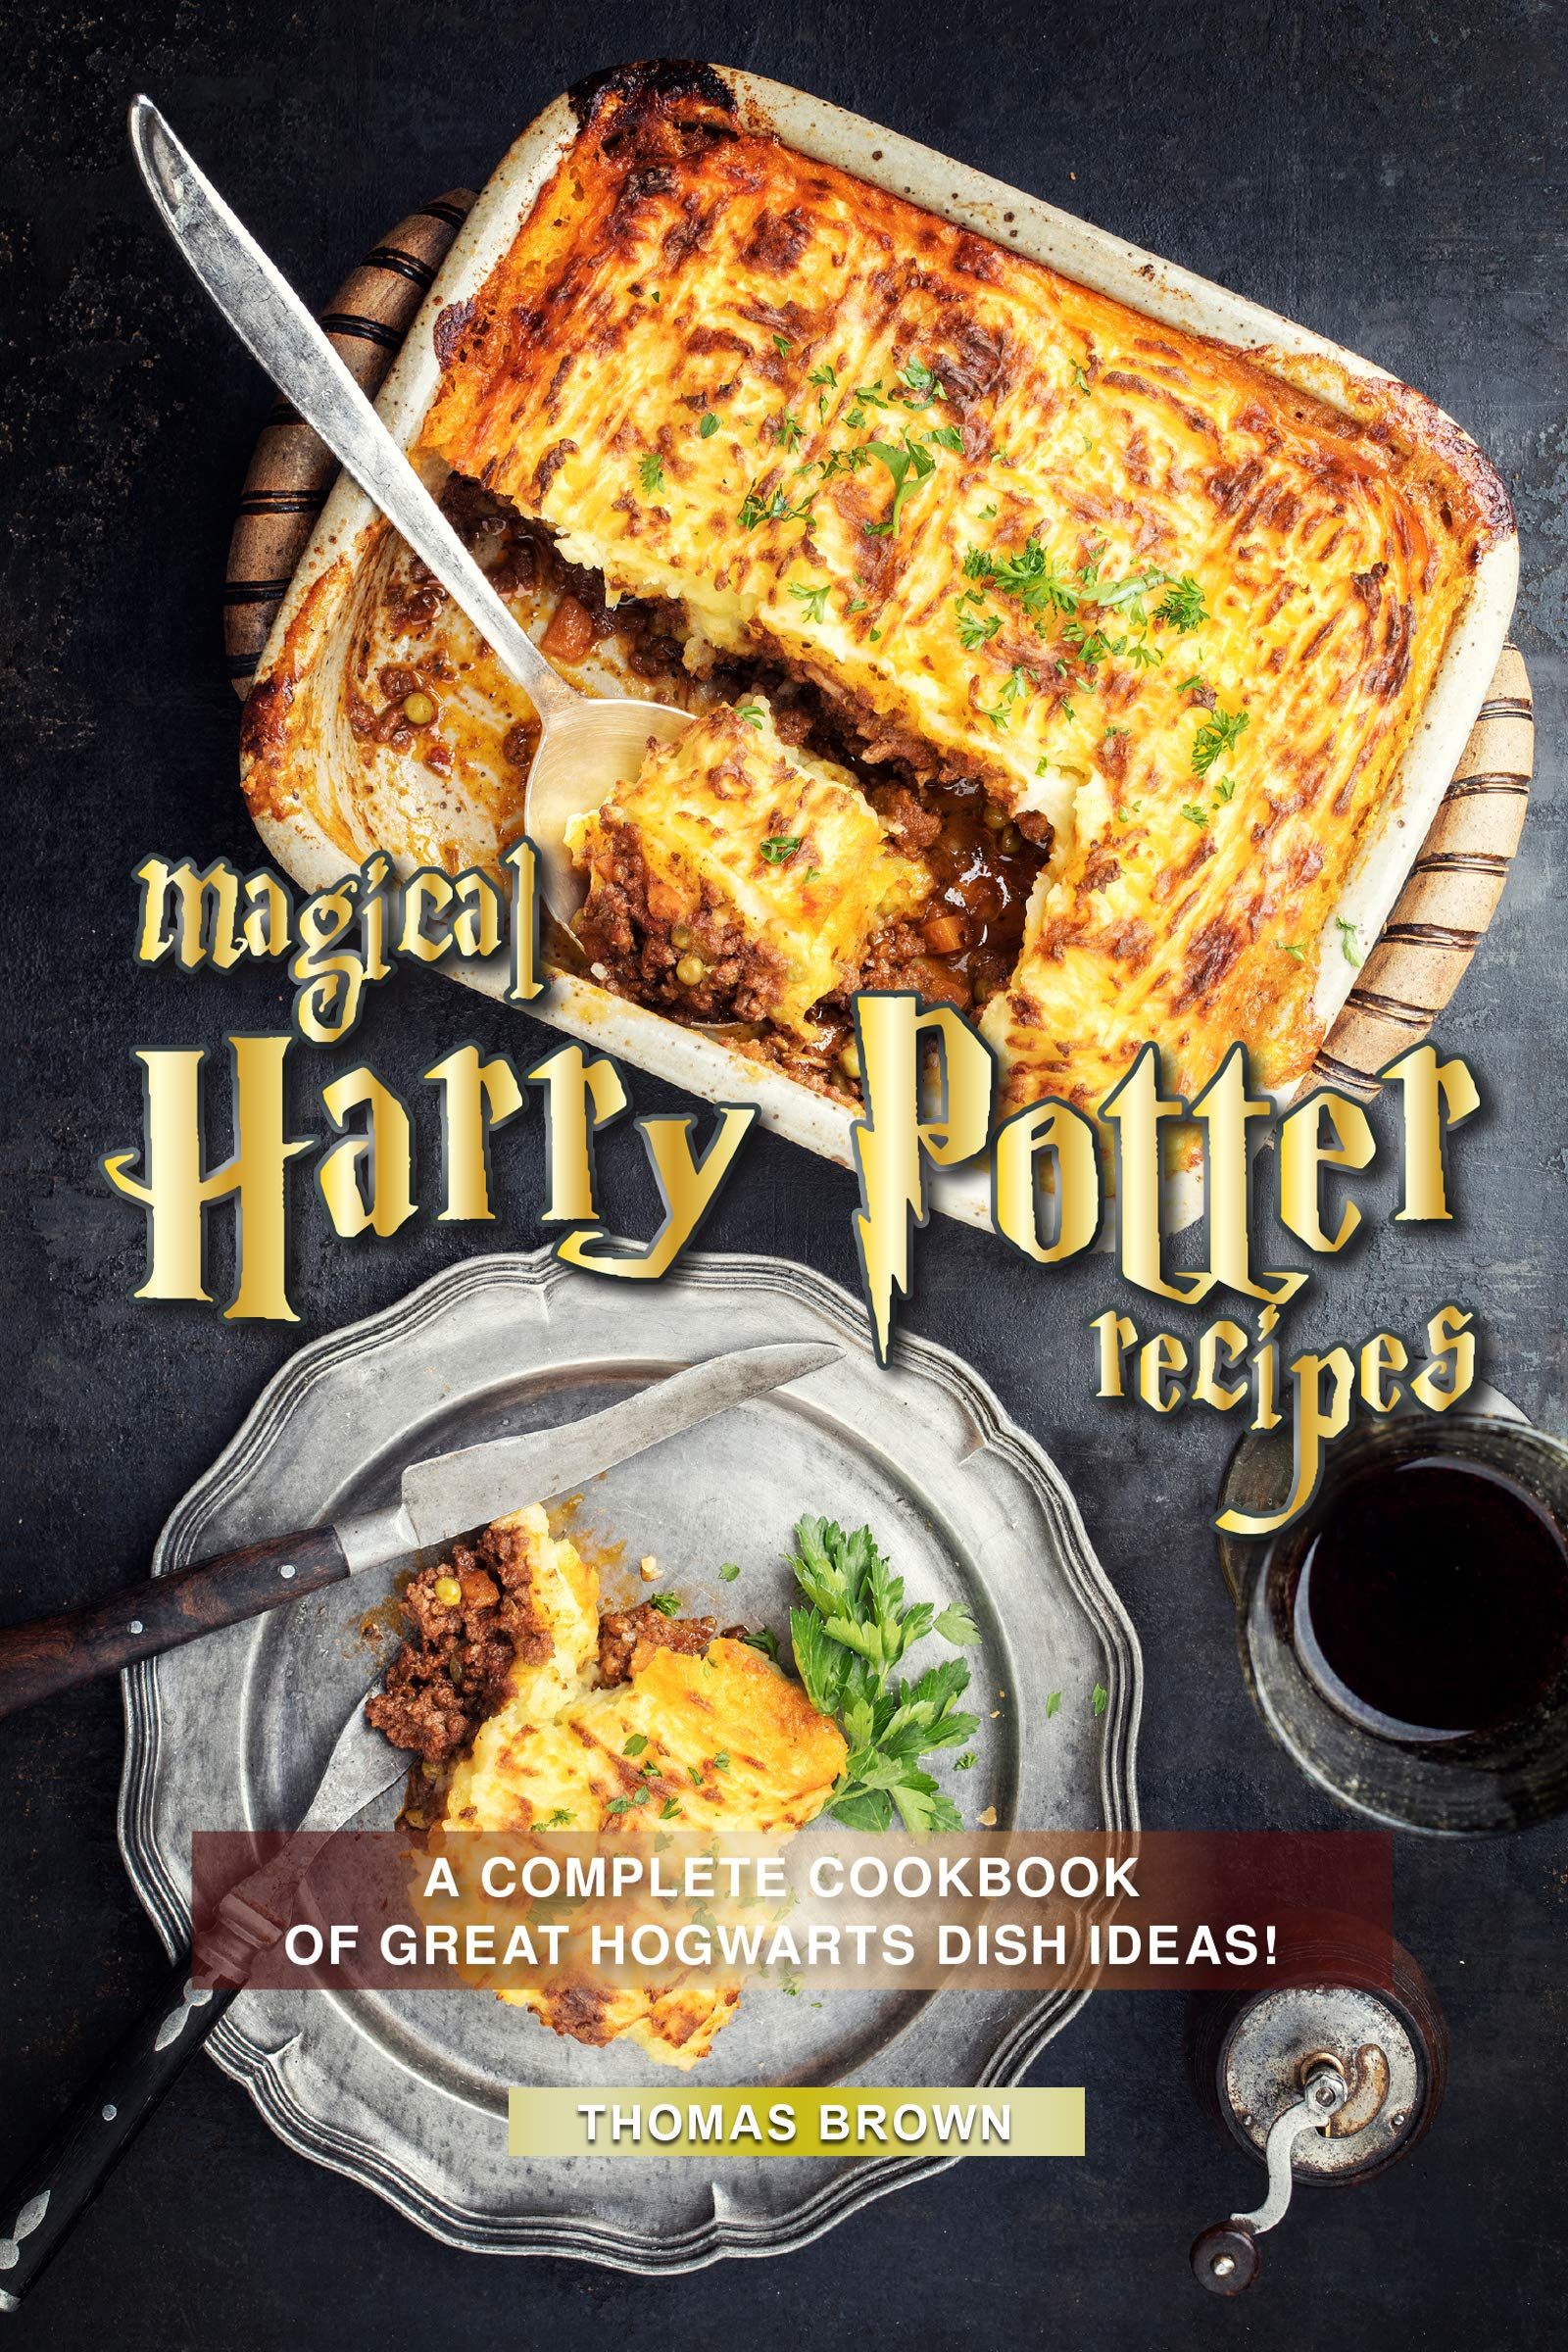 Magical Harry Potter Recipes  A Complete Cookbook Of Great Hogwarts Dish Ideas   English Edition